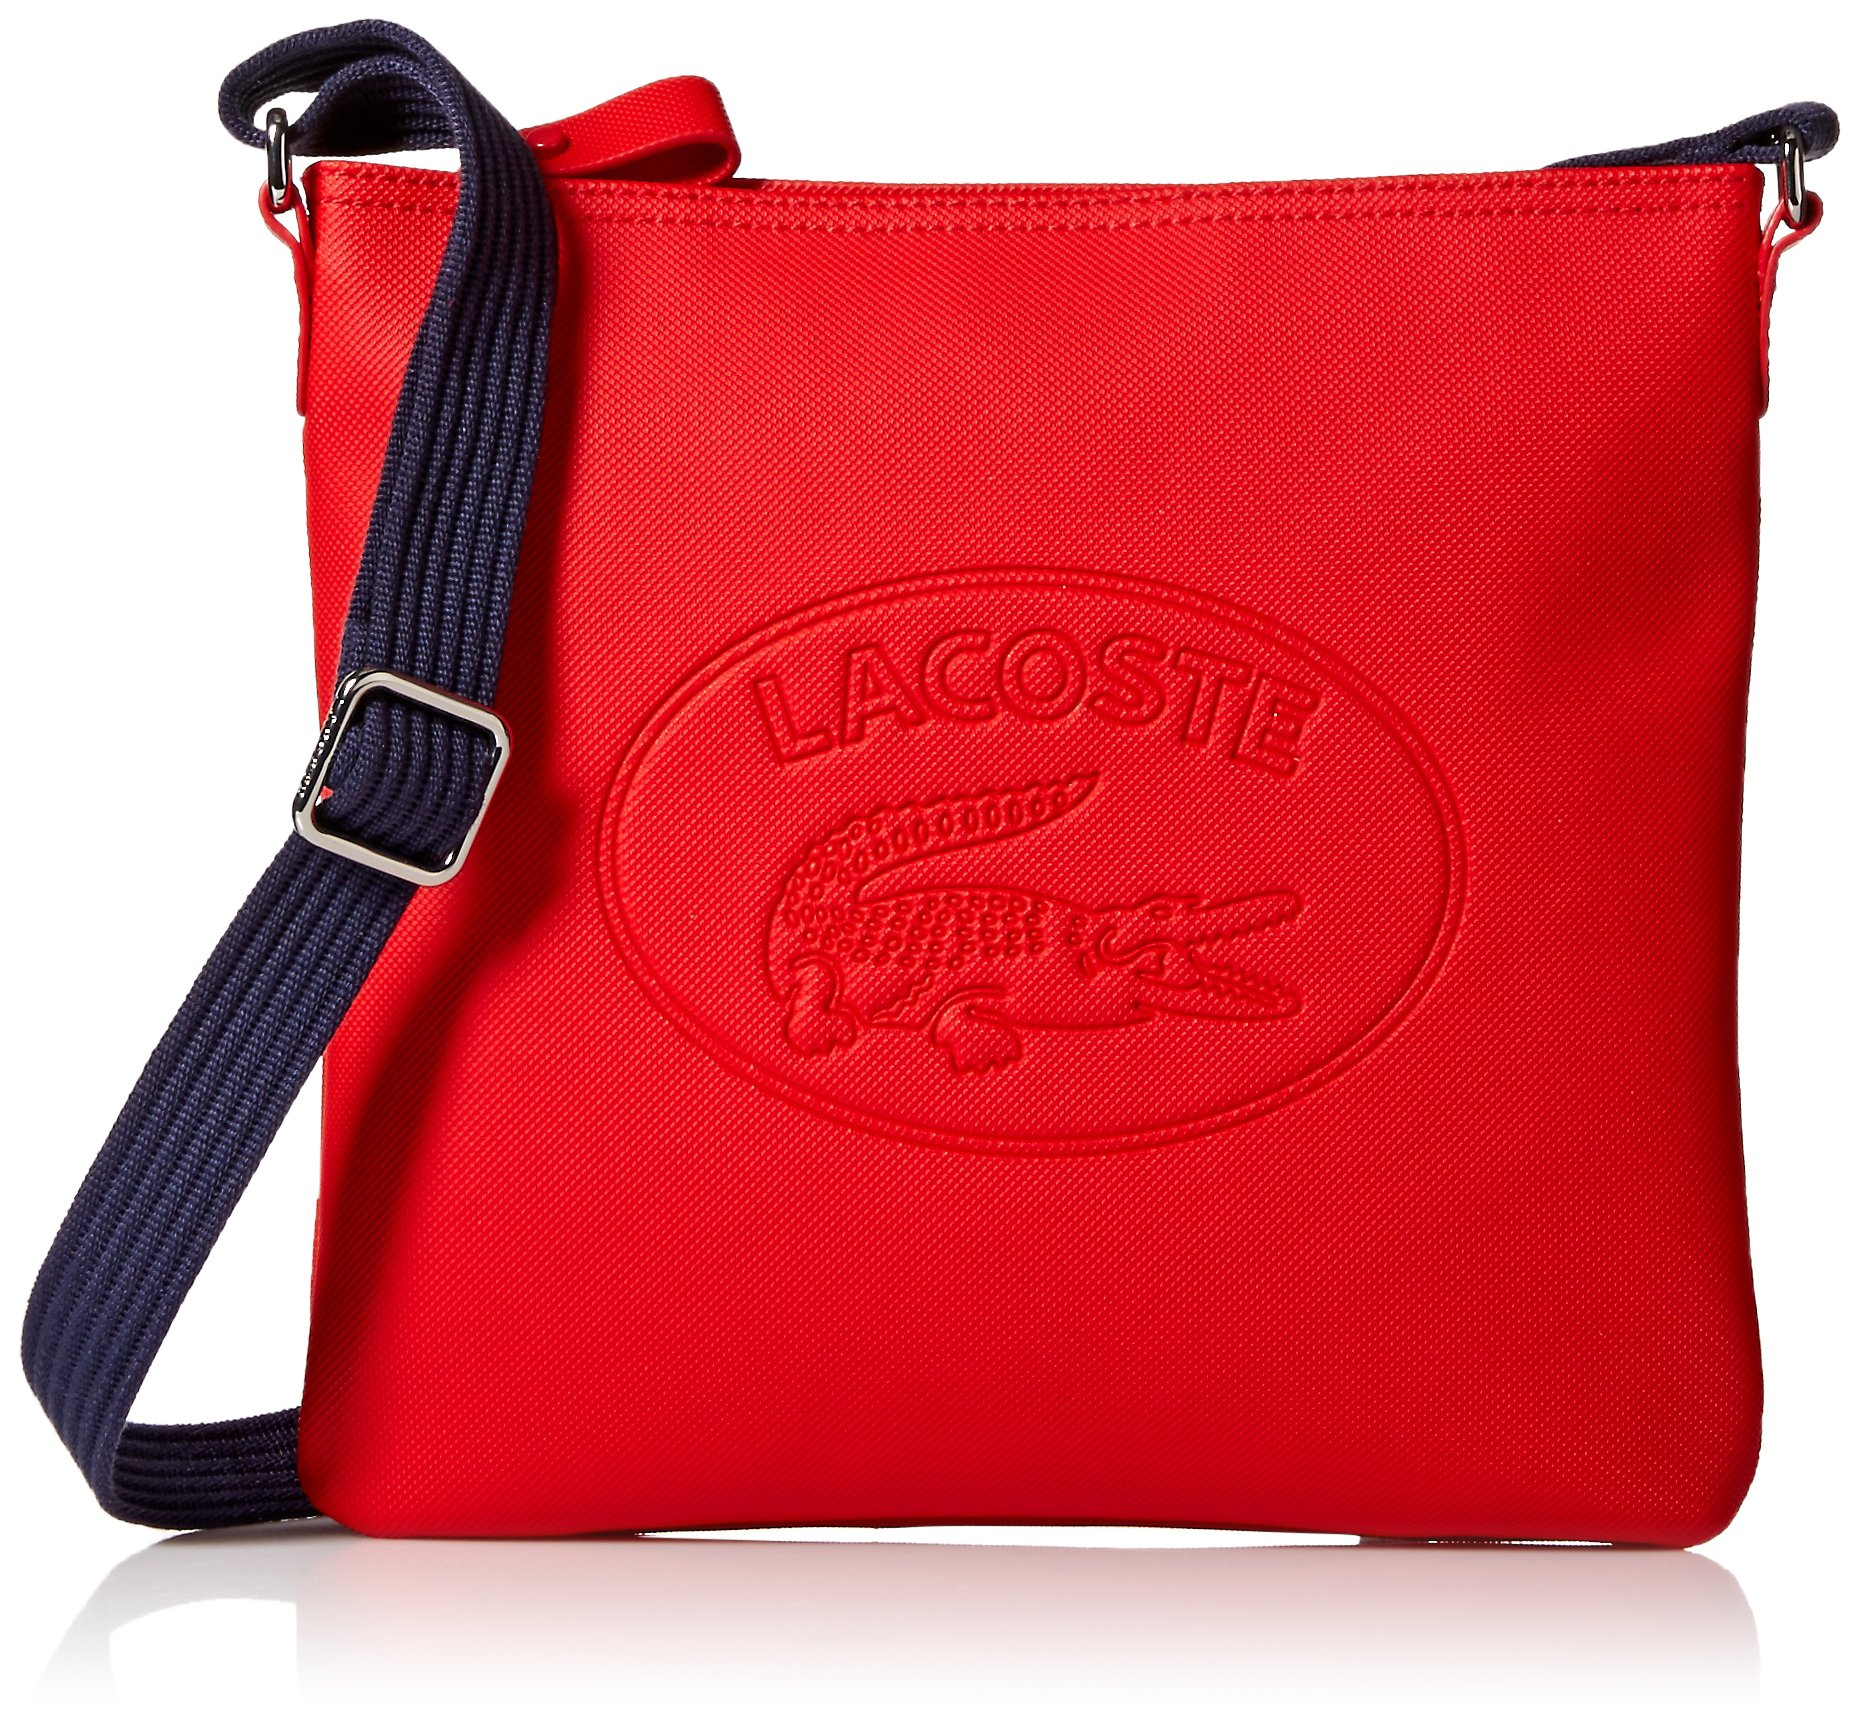 Lacoste Flat Crossover Bag, Nf2420wm, High Risk Red Peacoat